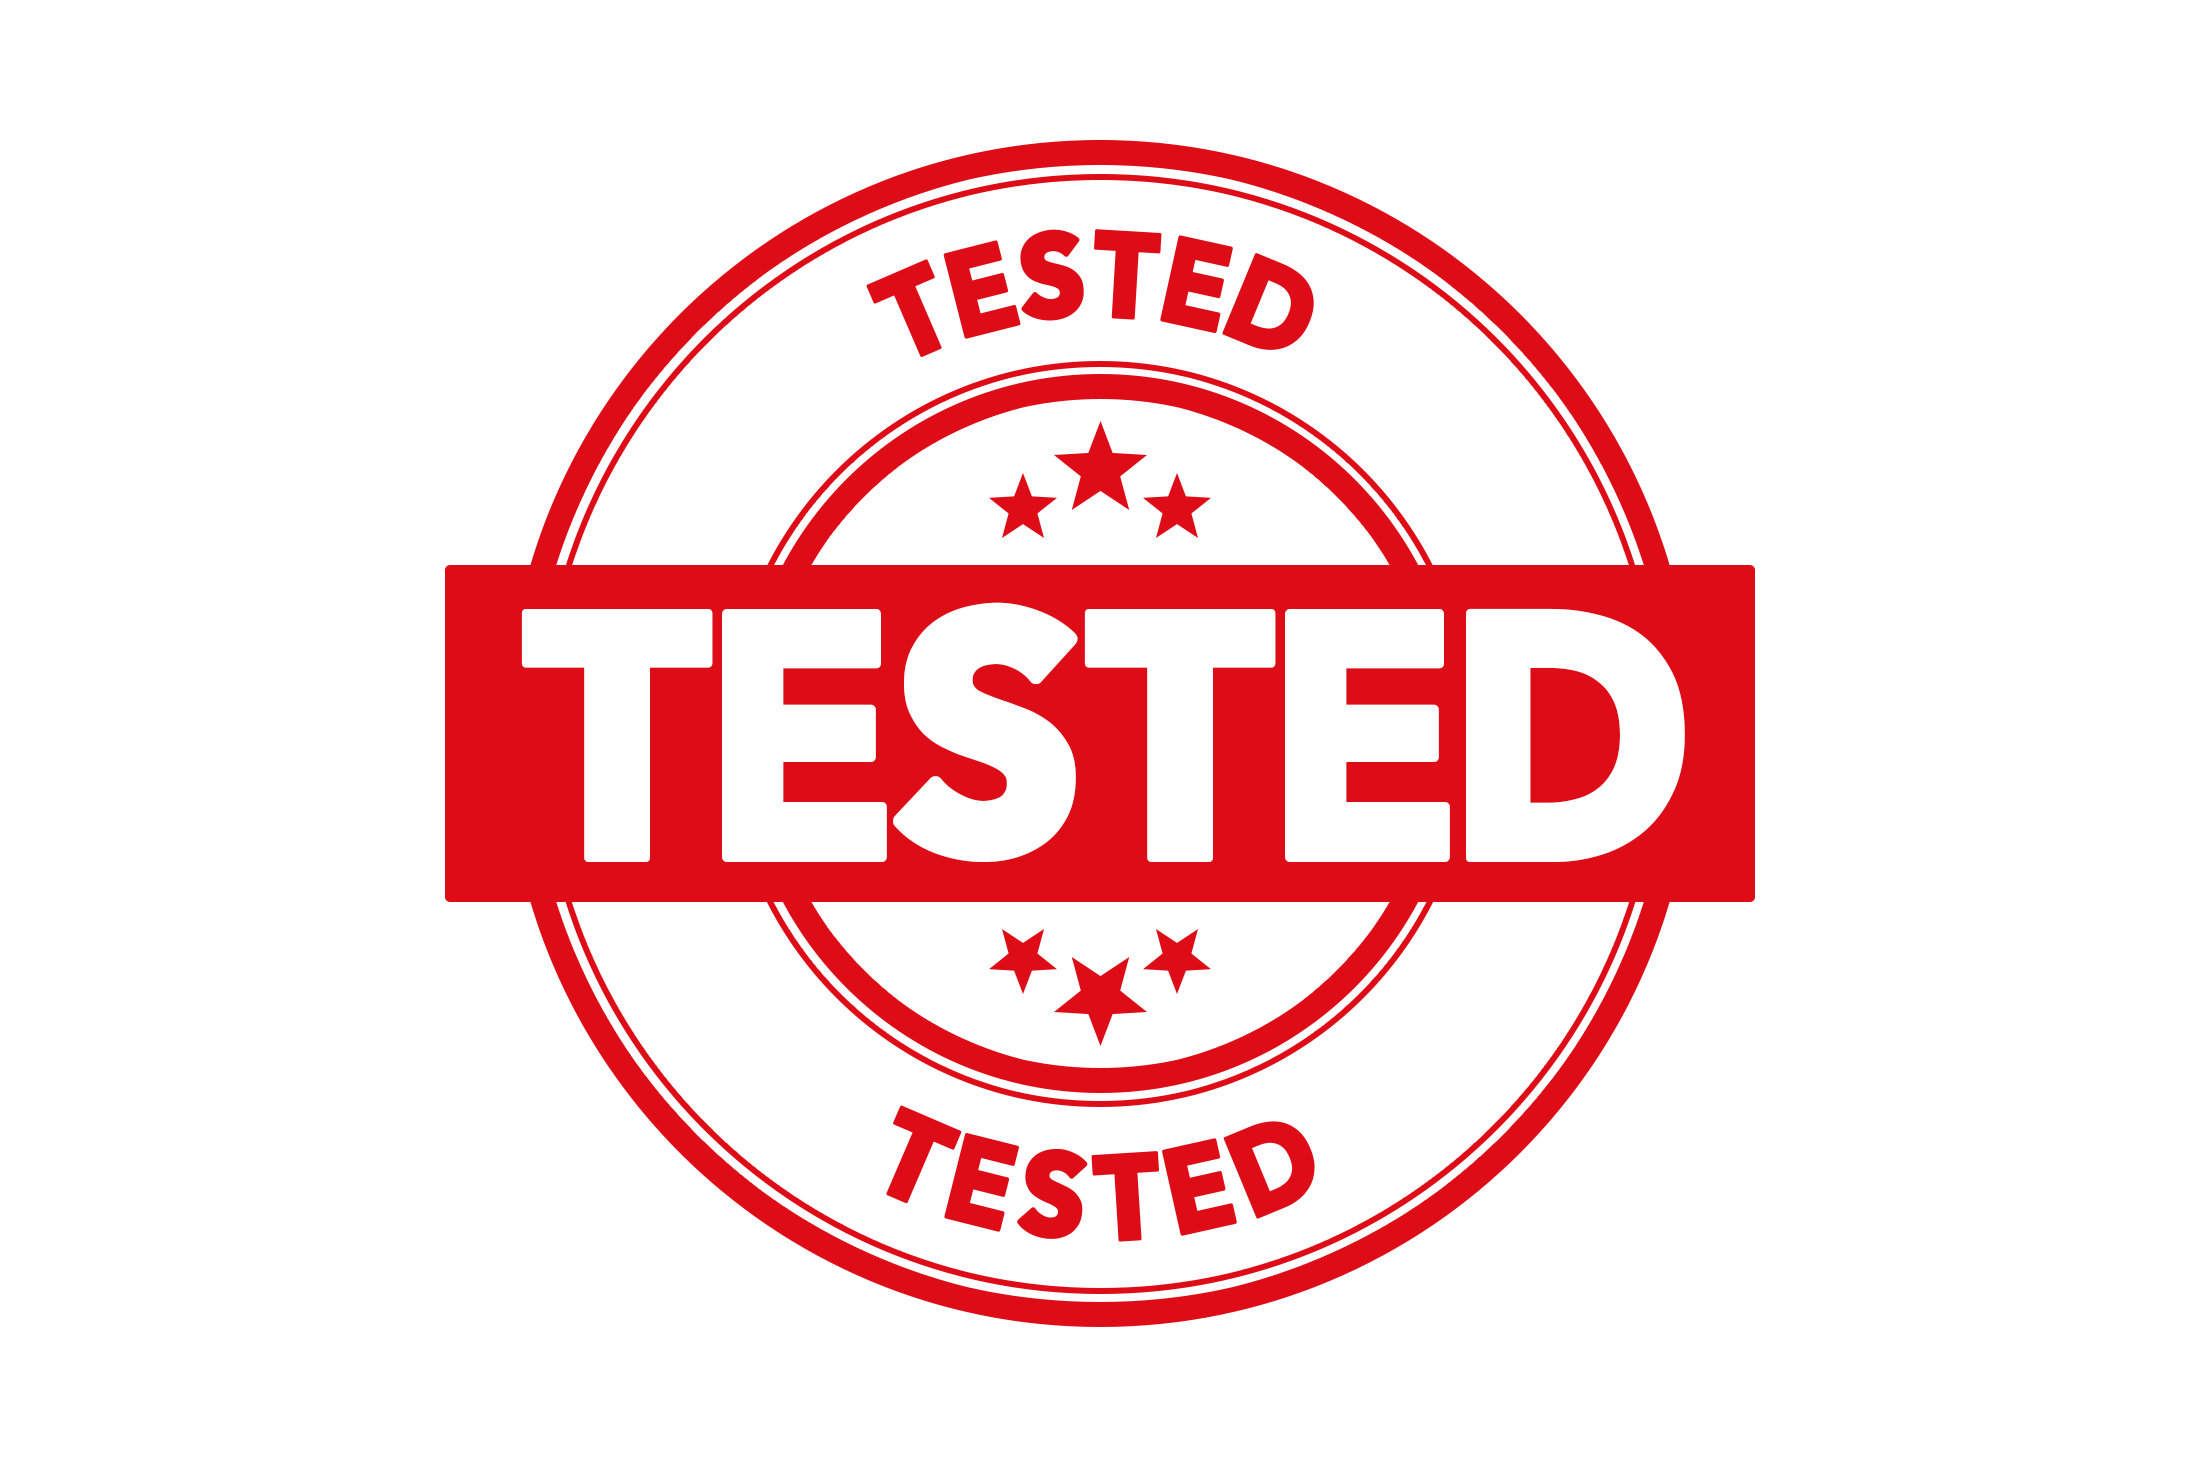 Round tested stamp PSD